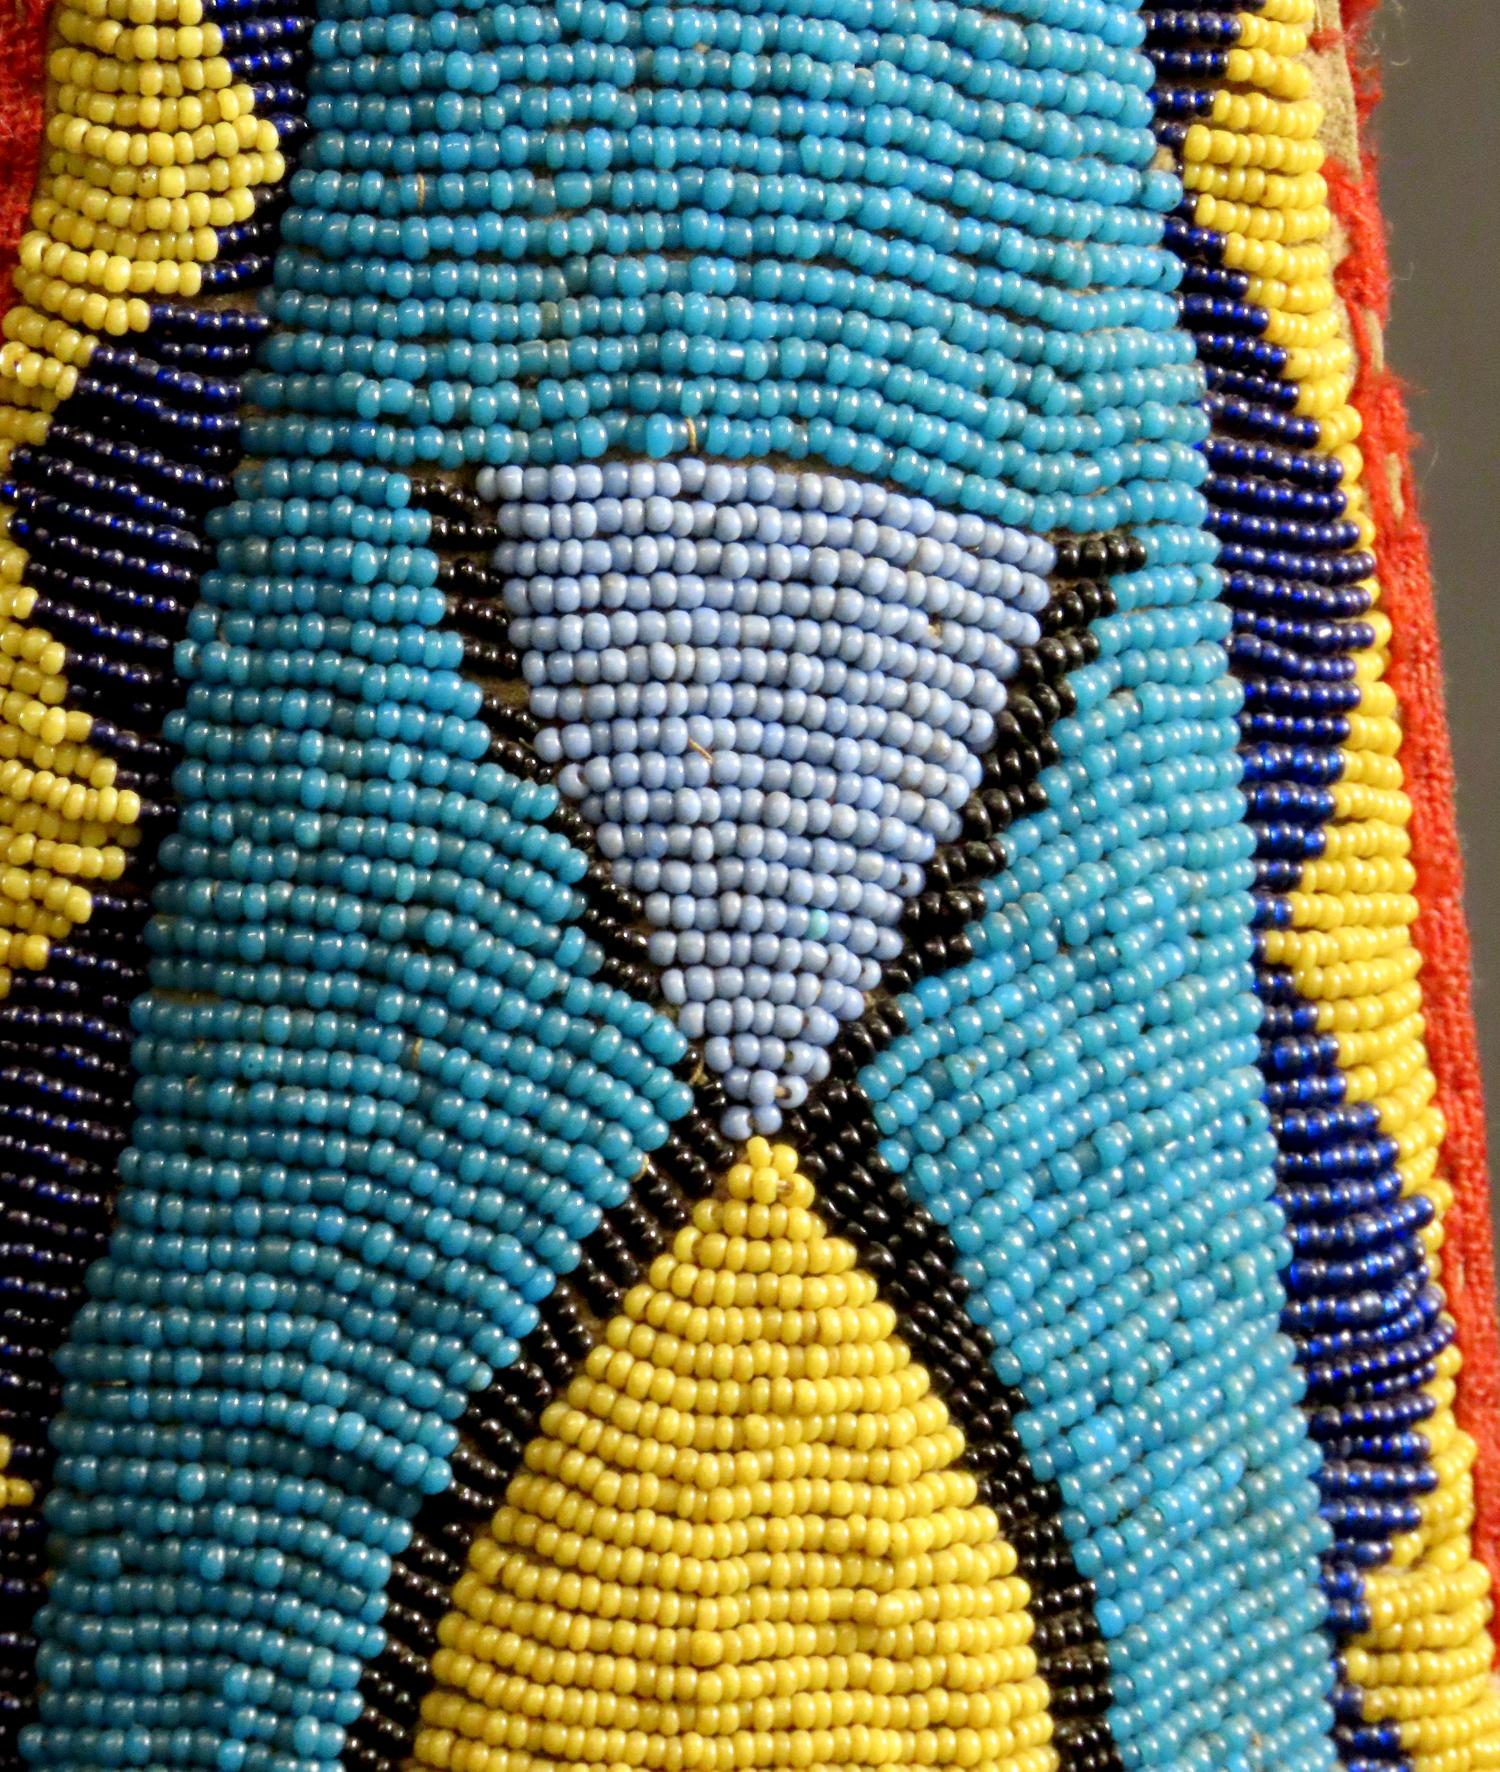 leather with beaded decoration in blue, yellow and reds